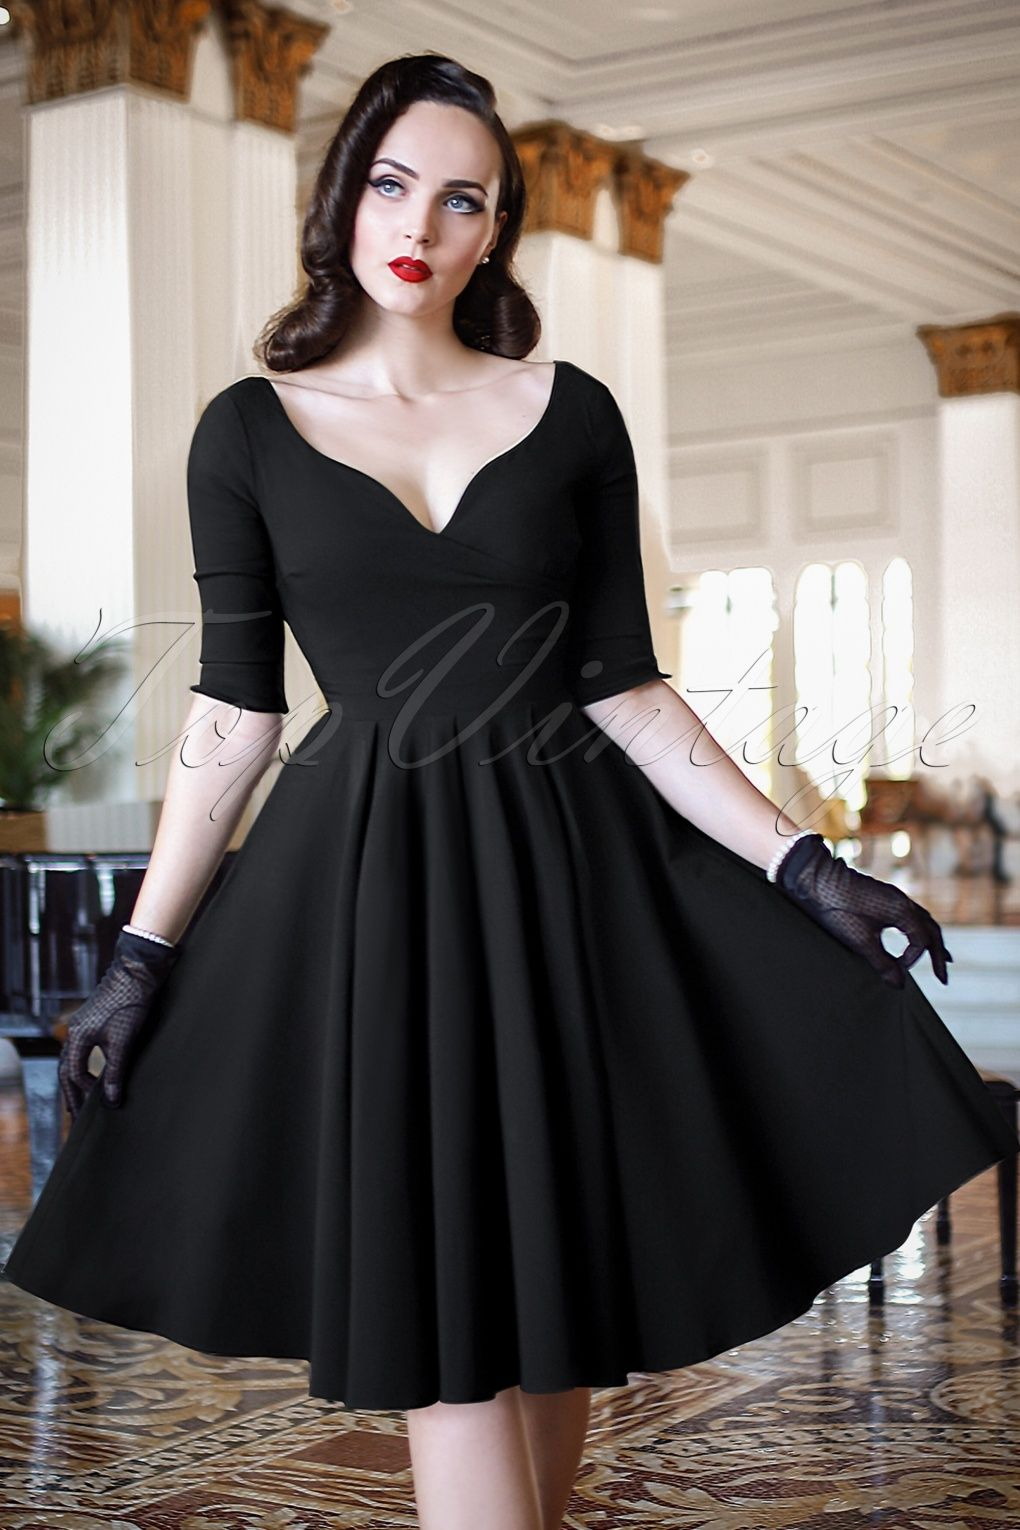 Vintage Evening Dresses And Gowns 1920s To 1960s Evening Dresses Vintage Swing Dress Black Swing Dress [ 1530 x 1020 Pixel ]